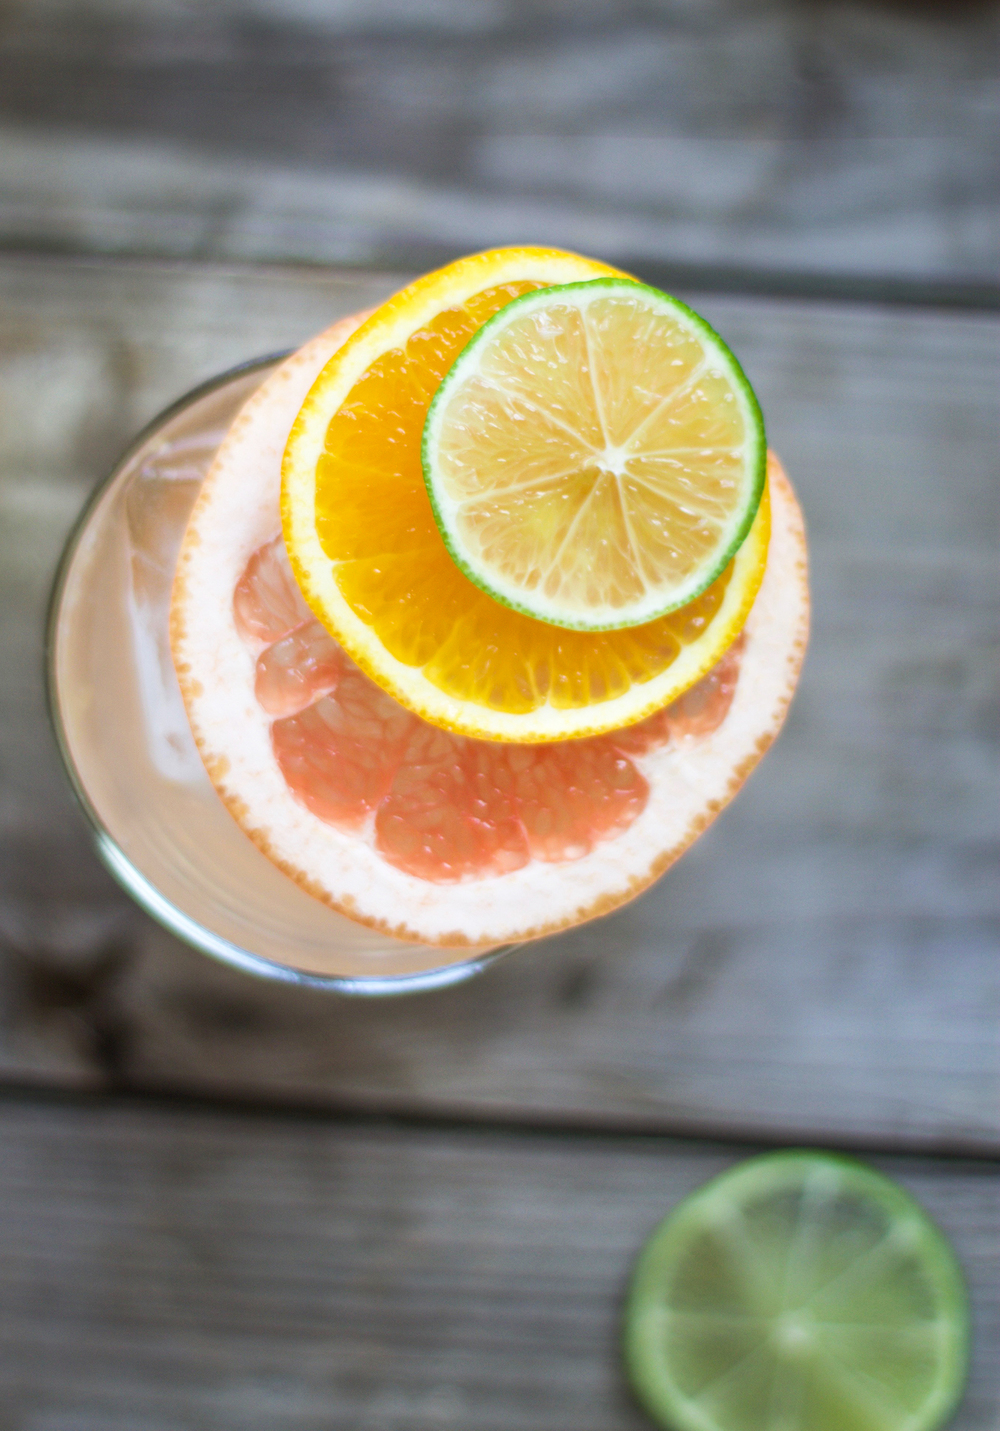 Mom's 5 O'Clock Citrus Vodka Soda